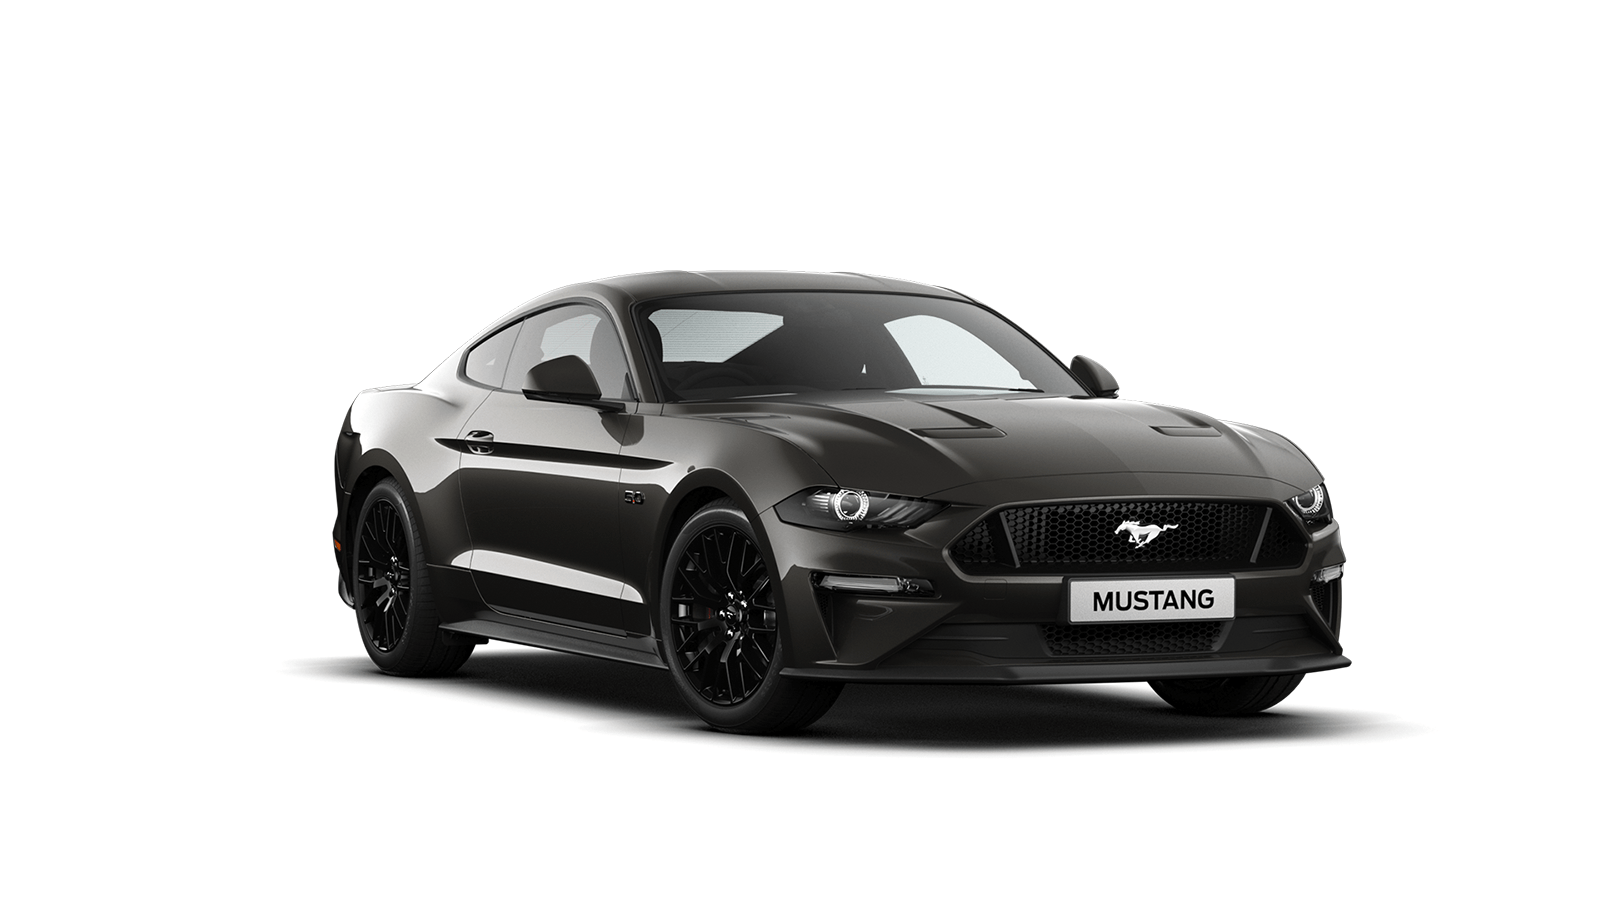 https://www.dealerinternet.co.uk/images/MUSTANG/2019/Fastback/5.0V8GT/MAGNETIC.png